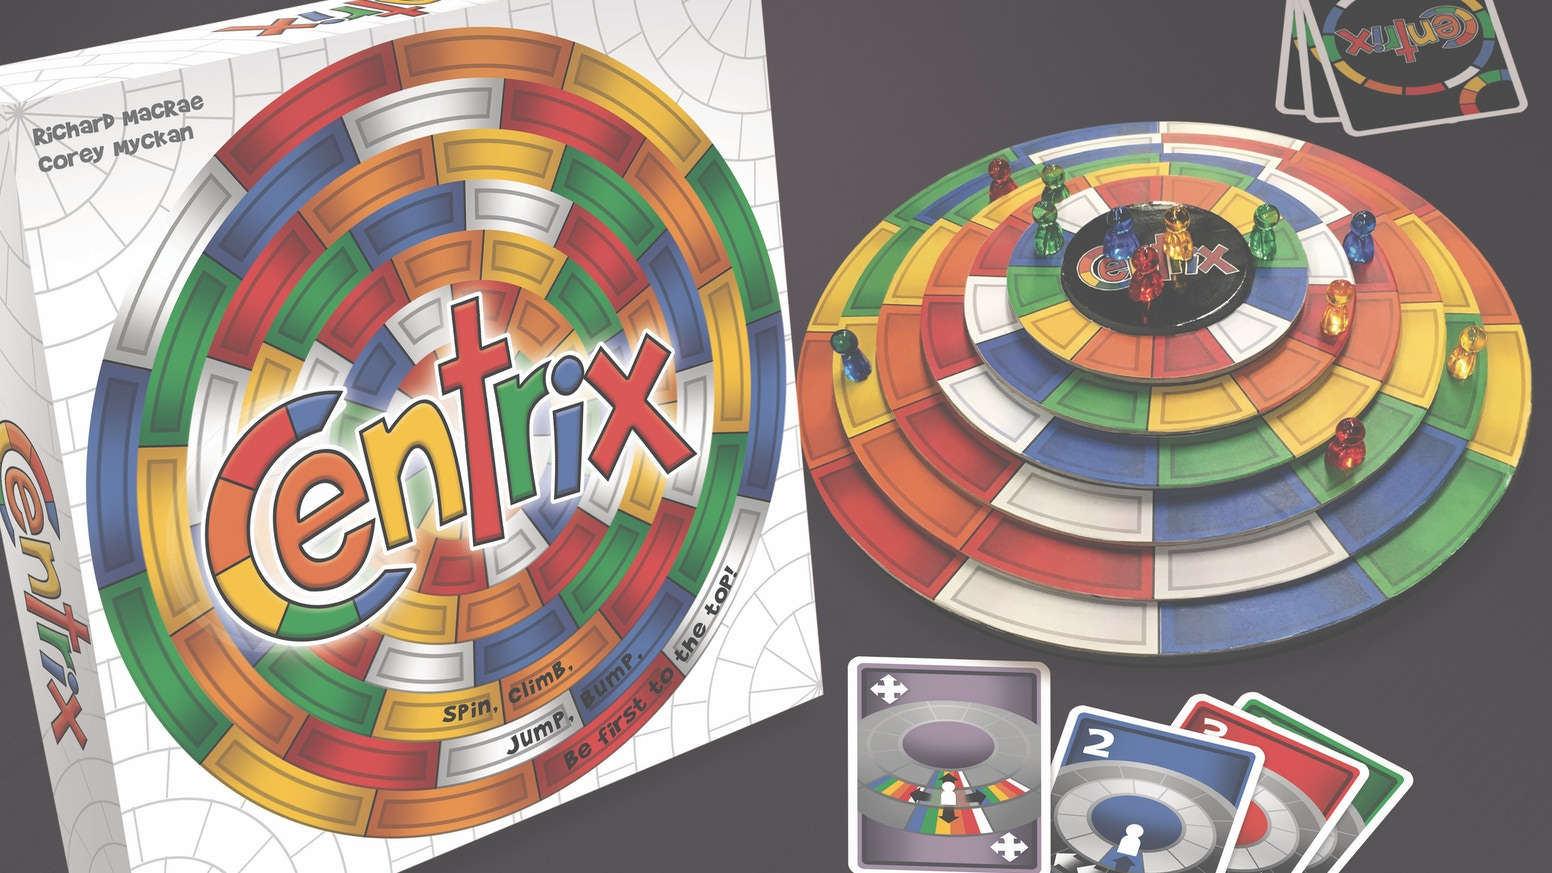 Centrix: A Spinning, Jumping, Bumping 3D Tabletop Game by